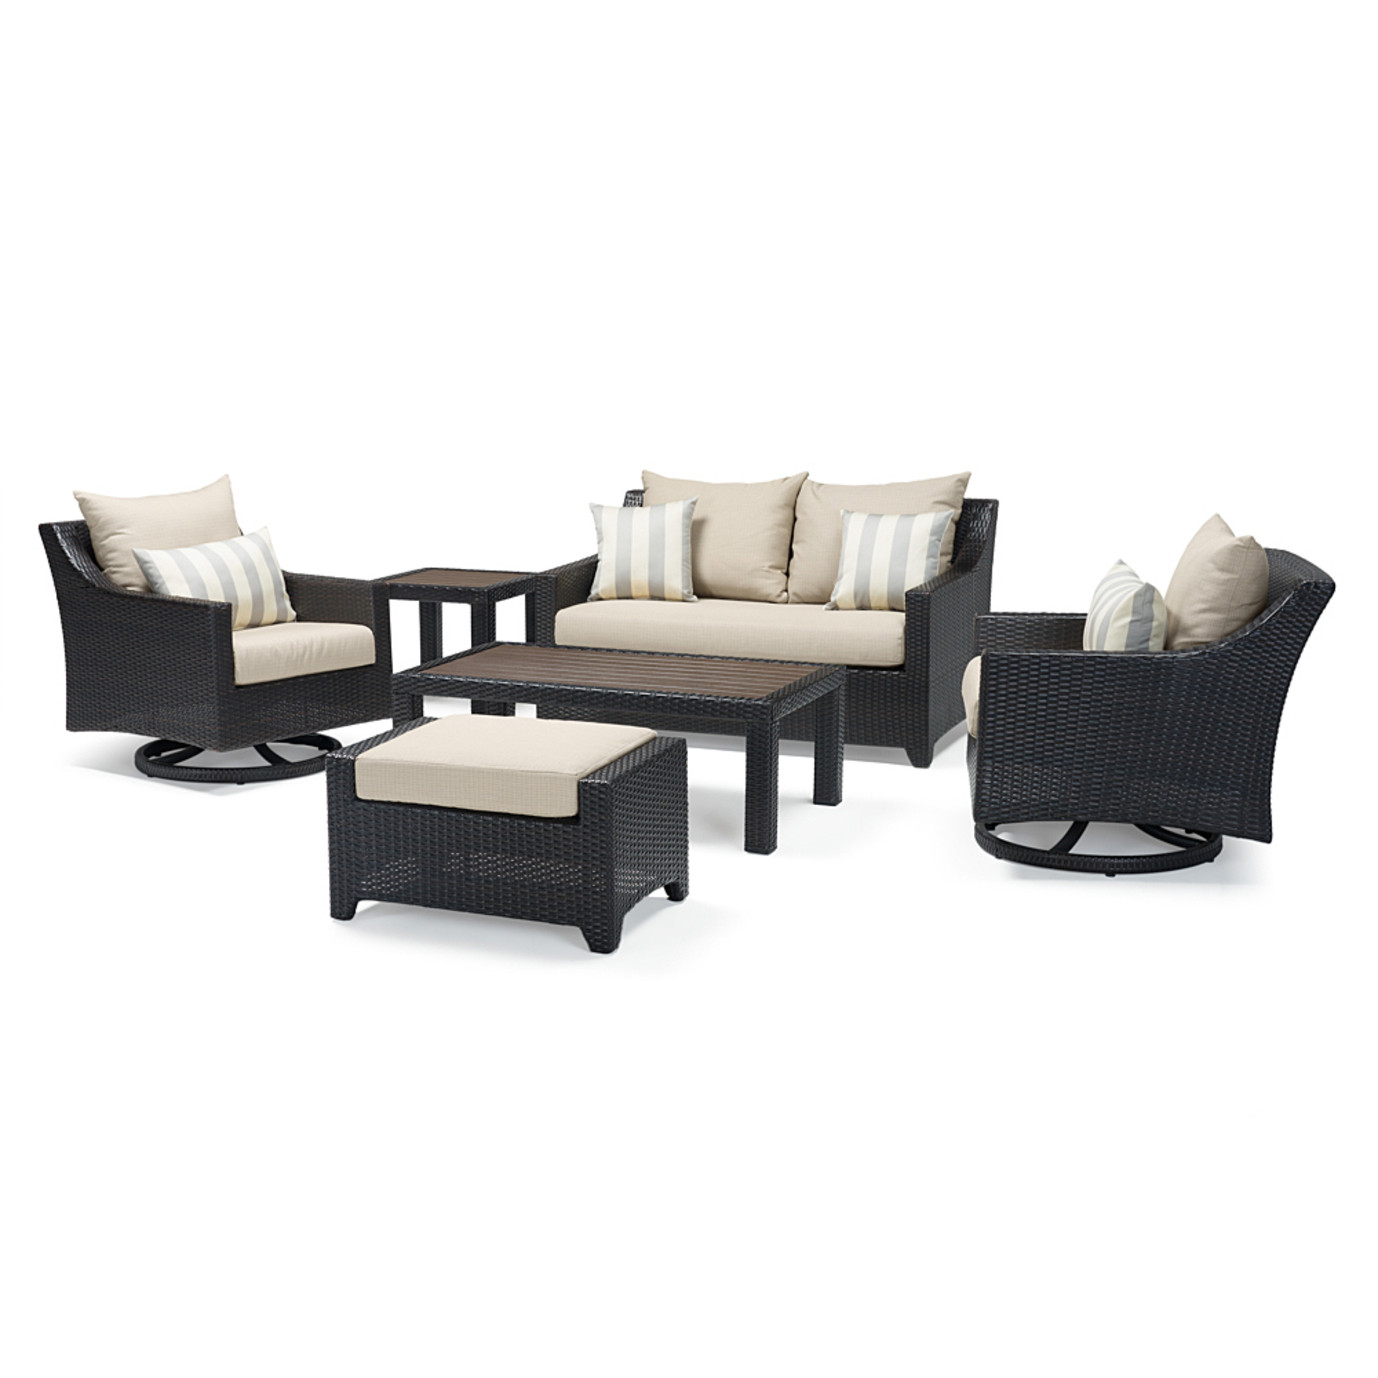 Deco Deluxe 6 Piece Love & Motion Club Seating Set - Slate Gray